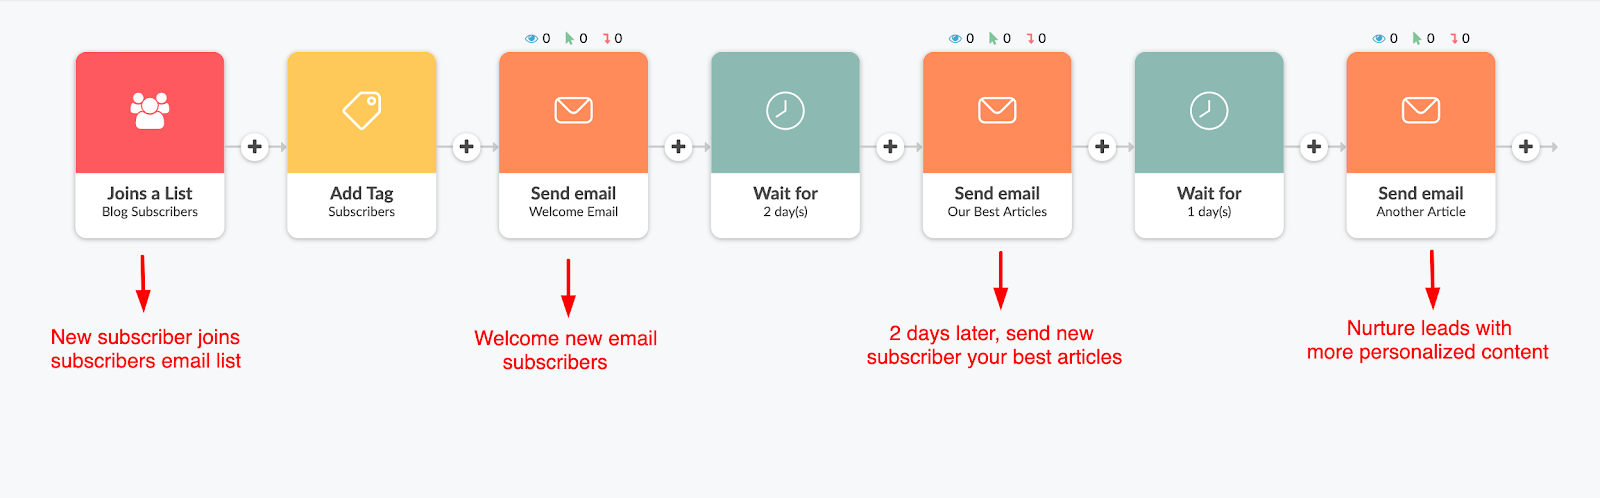 4 - Automate your sales and follow-up emails